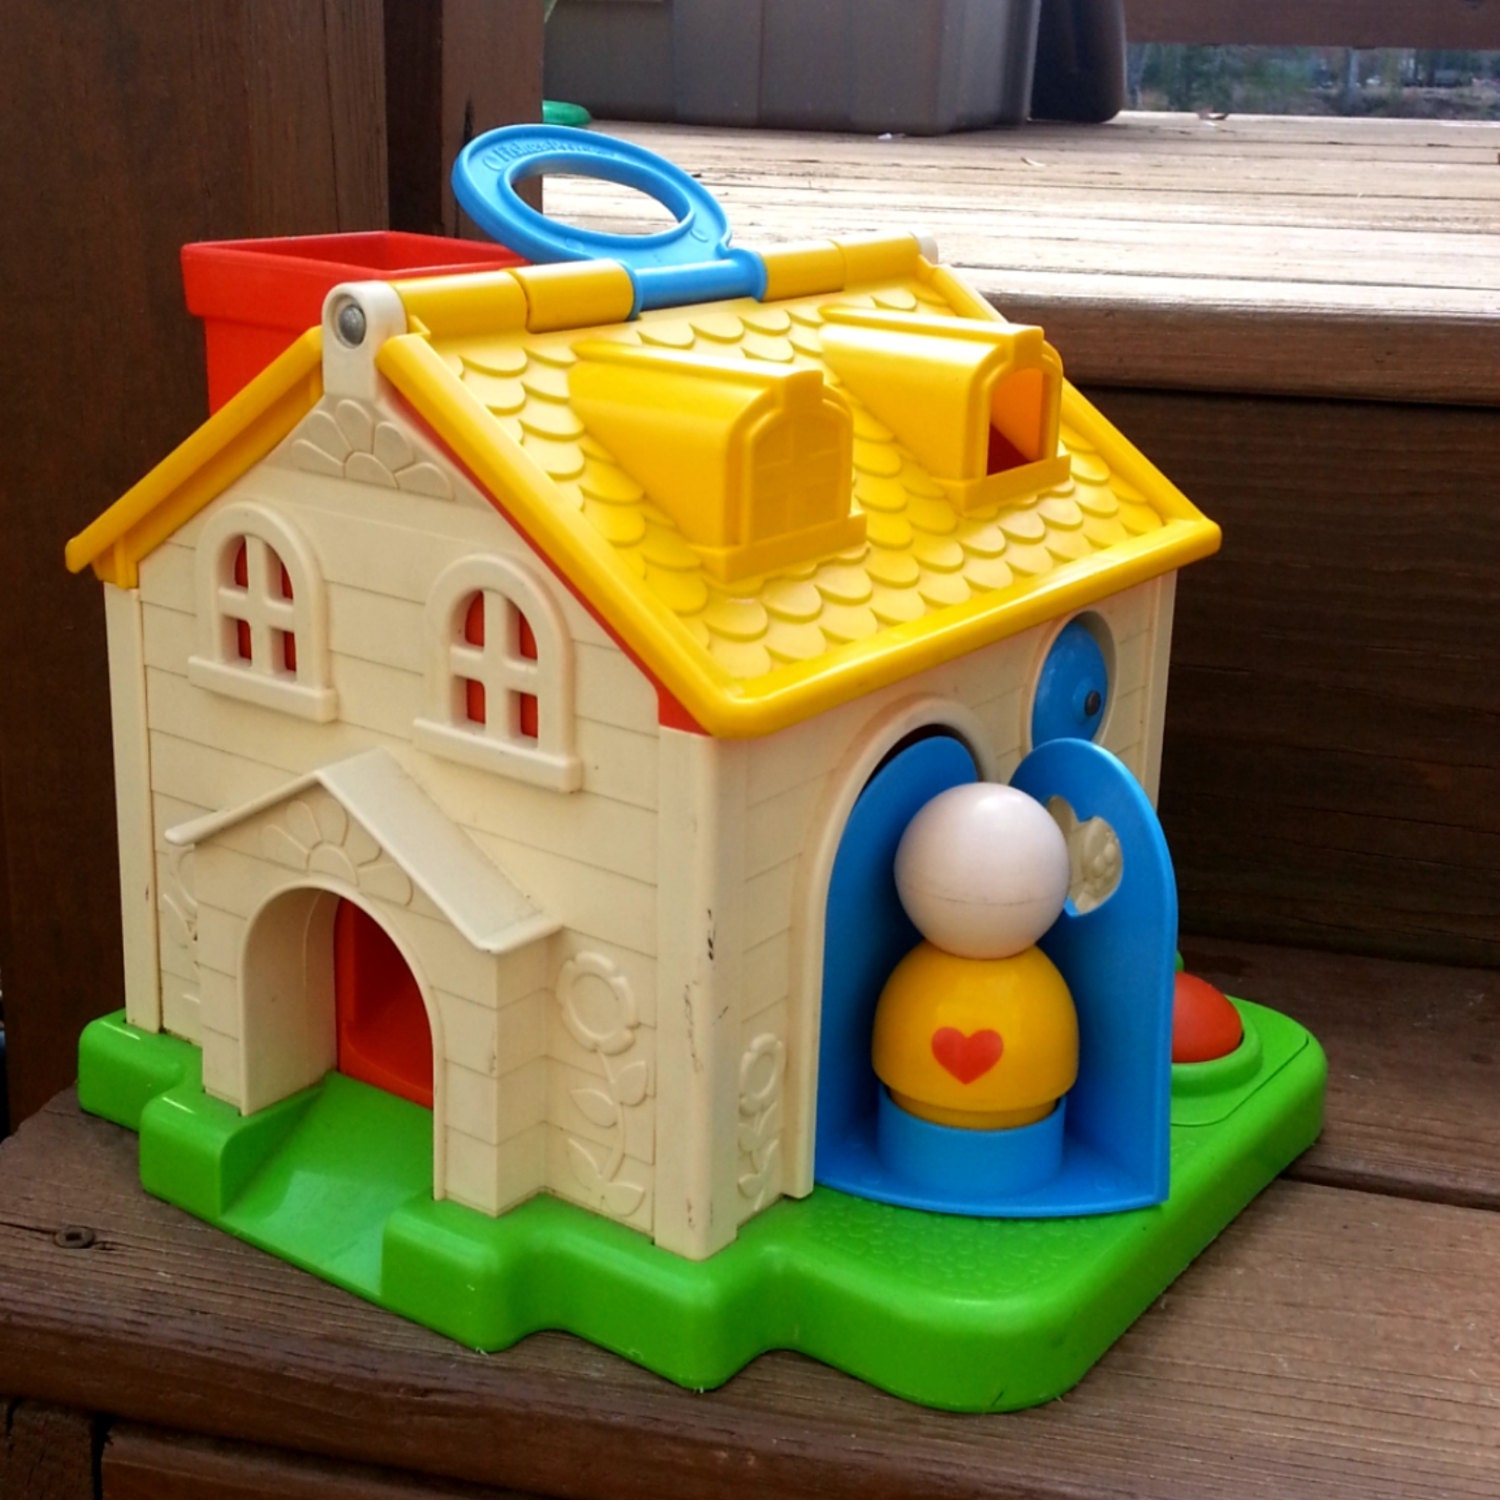 Toys For The 80s : Vintage s fisher price toy housesale